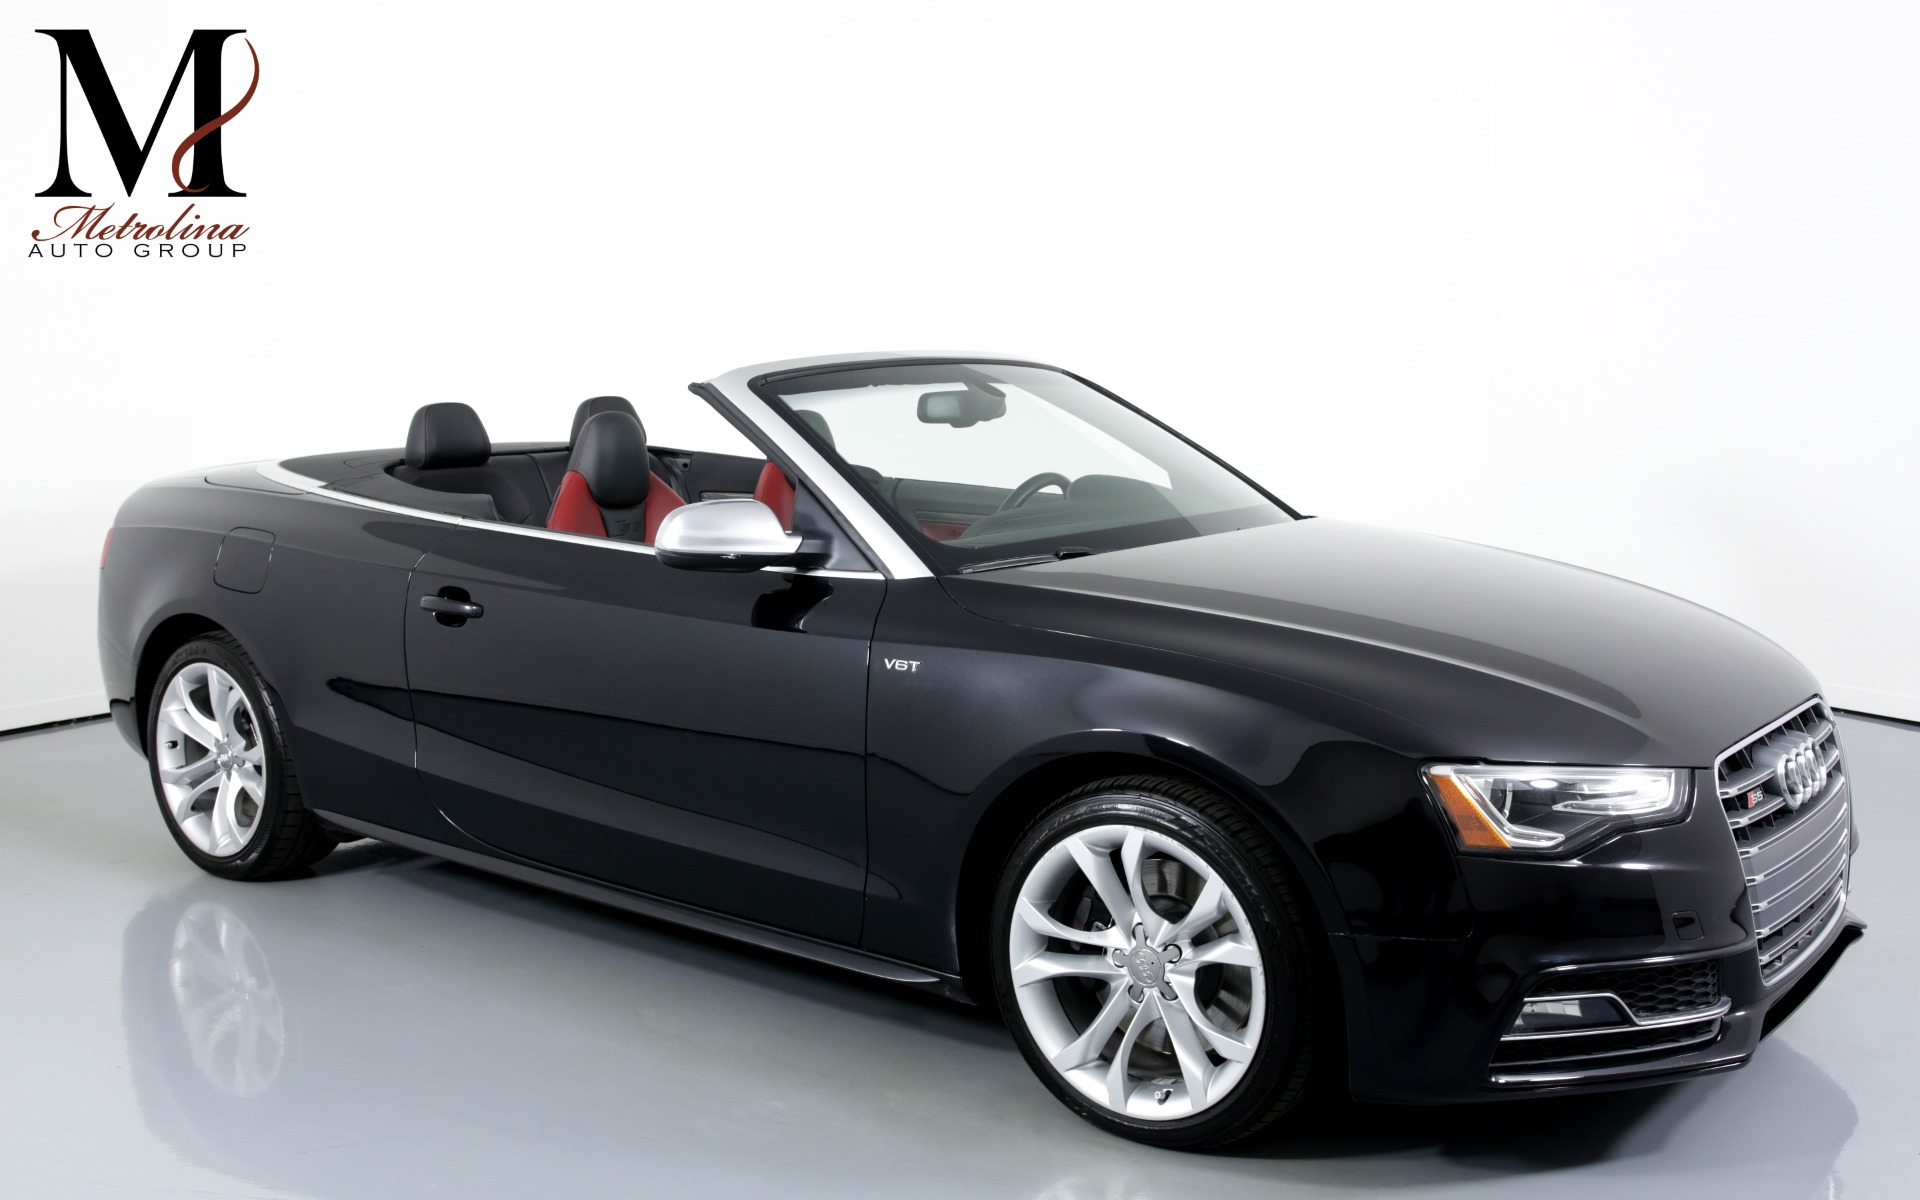 Used 2014 Audi S5 3.0T quattro Premium Plus AWD 2dr Convertible for sale $24,995 at Metrolina Auto Group in Charlotte NC 28217 - 1